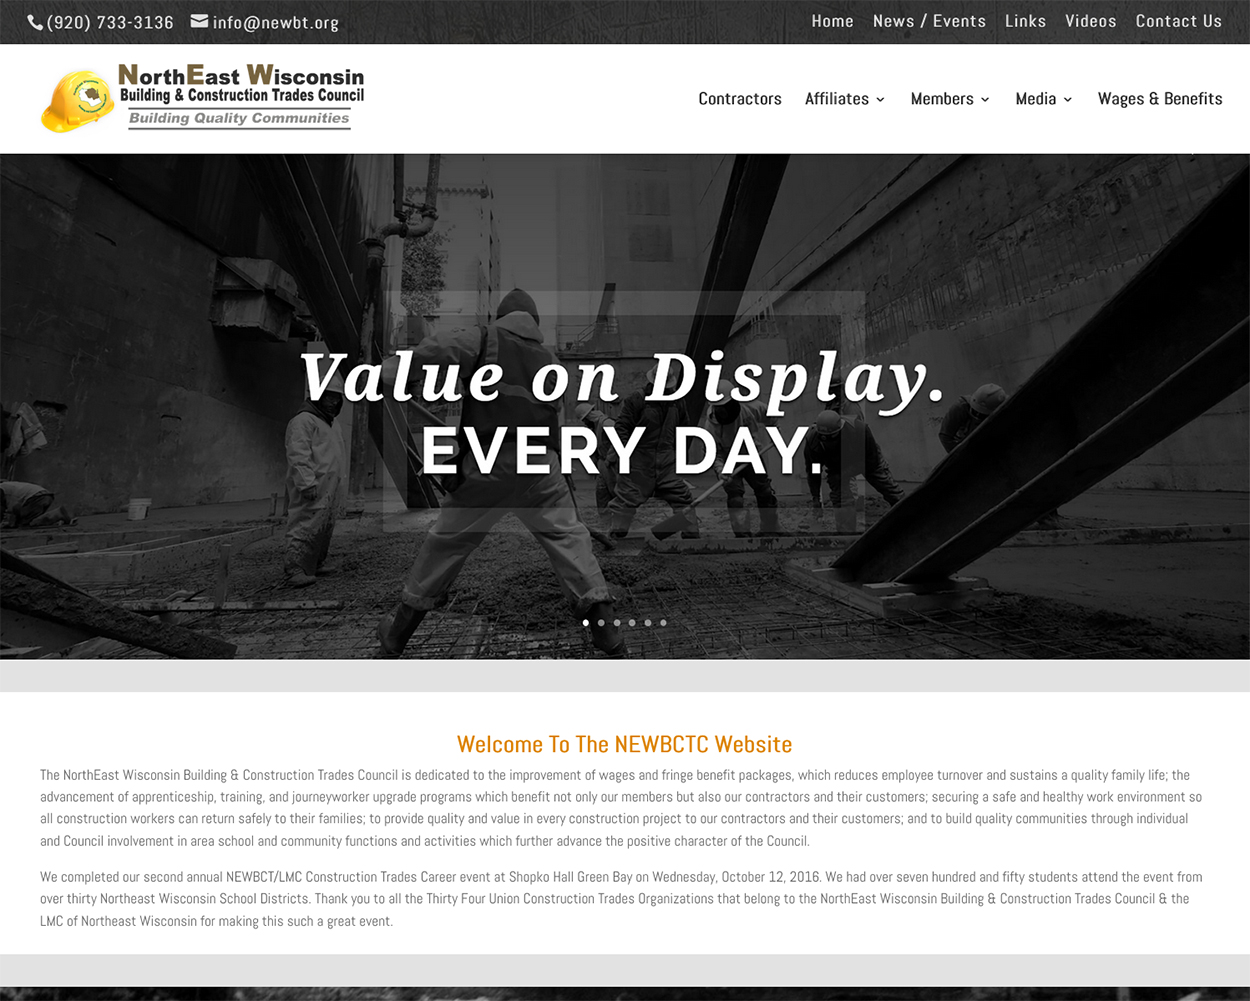 The NorthEast Wisconsin Building & Construction Trades Council (NEWBCTC),website designers in Wisconsin, Union web design, construction,home builders website design,seo,social media experts,WI web design, American website designers,Wisconsin Made Websites,Wisconsin website developers, Wisconsin WordPress Developers